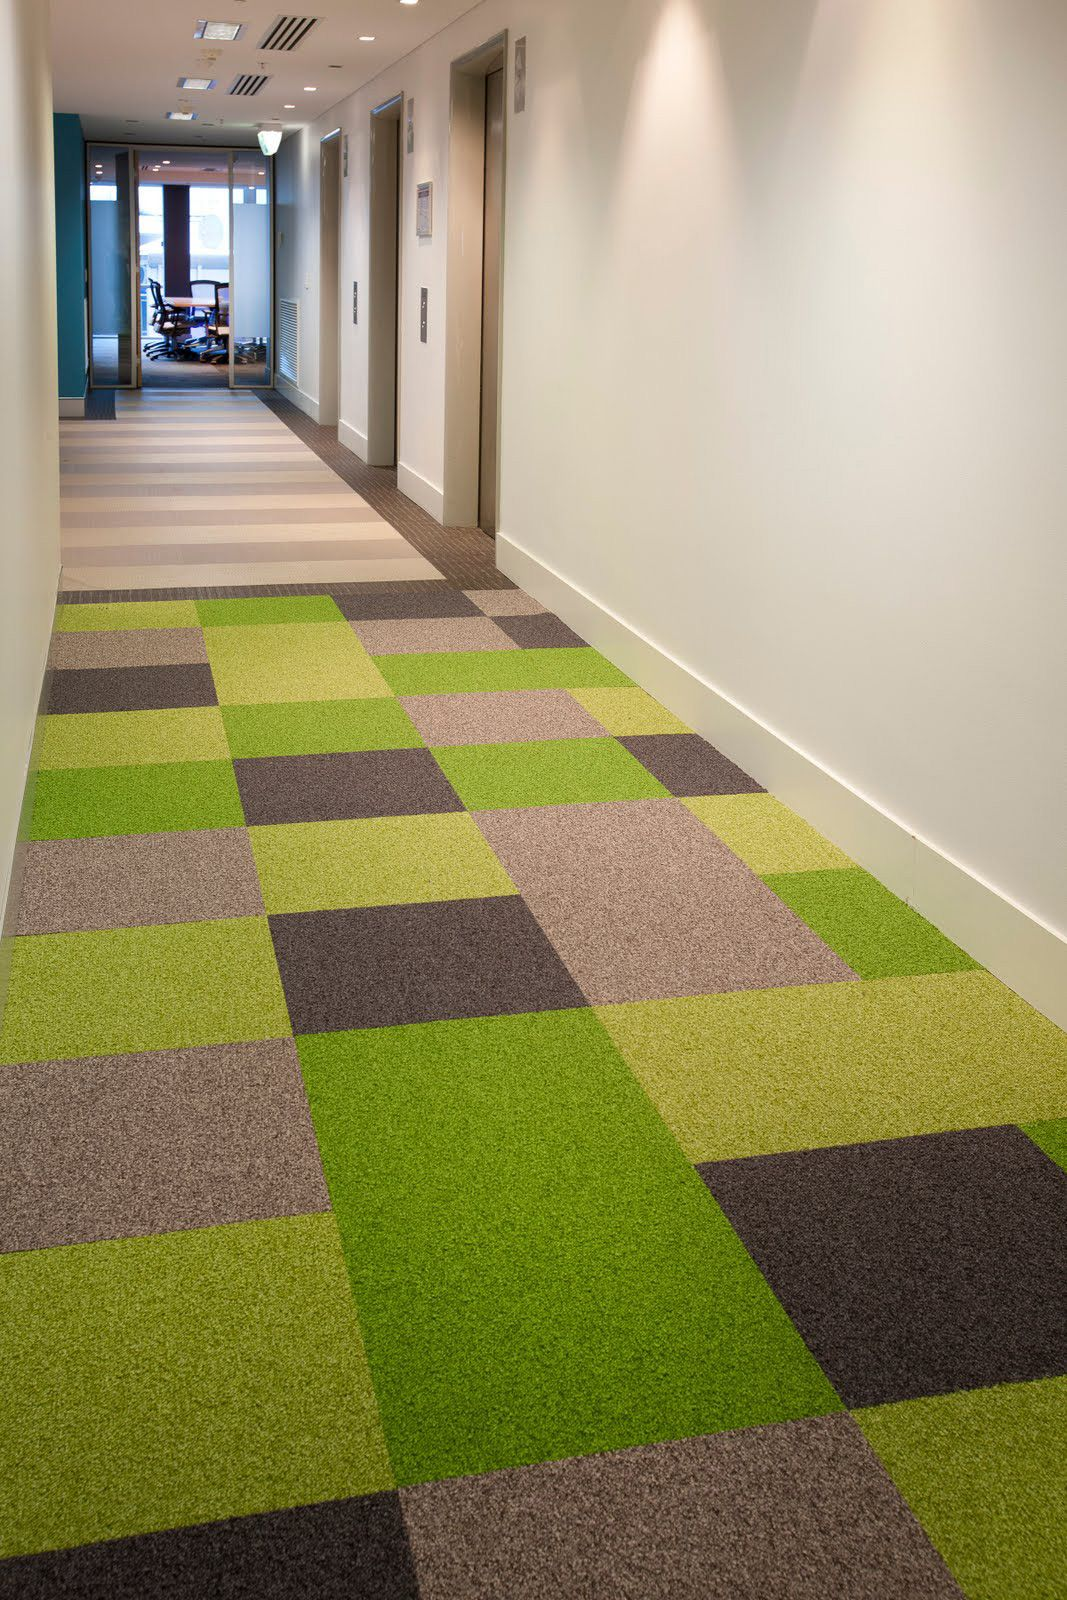 Cheap Carpet Tiles Perfect Lay Out With Carpet Tiles Carpet Tiles Carpet Tiles Cheap Carpet Tiles Office